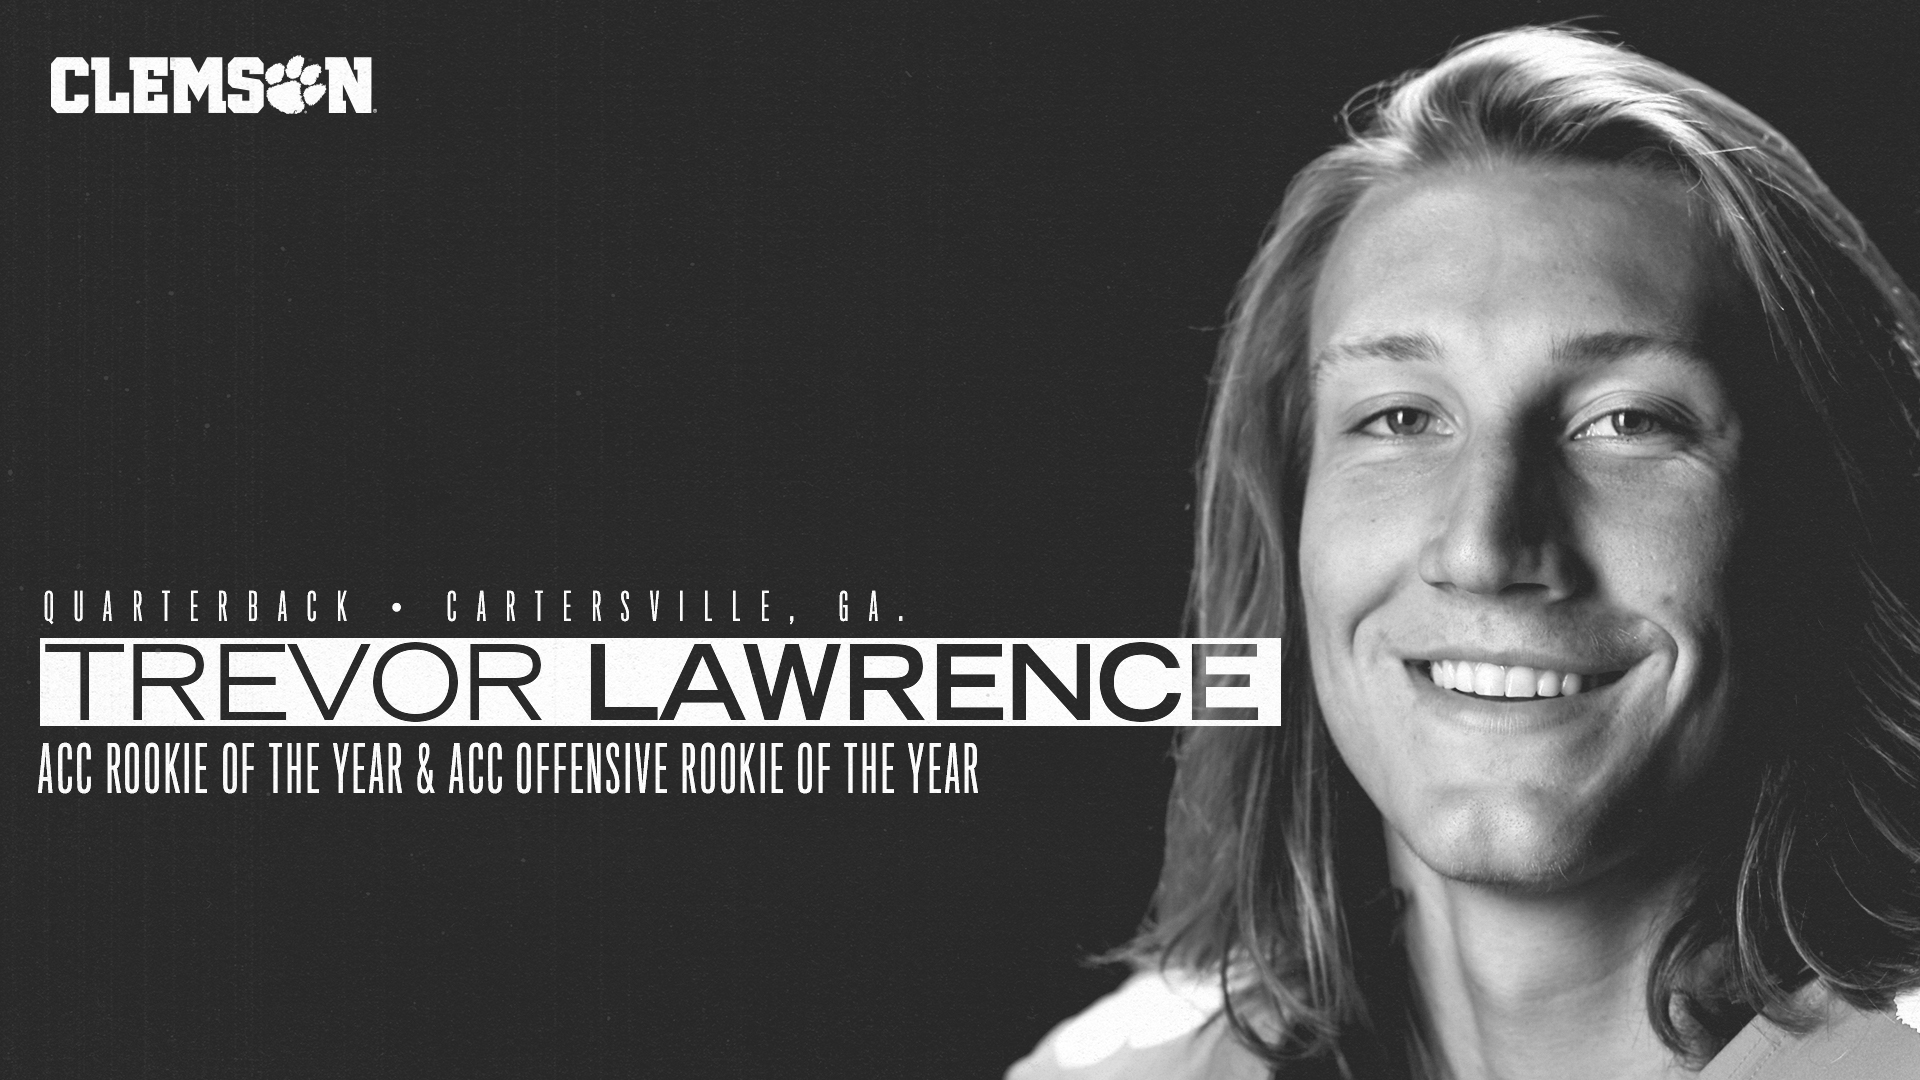 Trevor Lawrence Named ACC Rookie of the Year